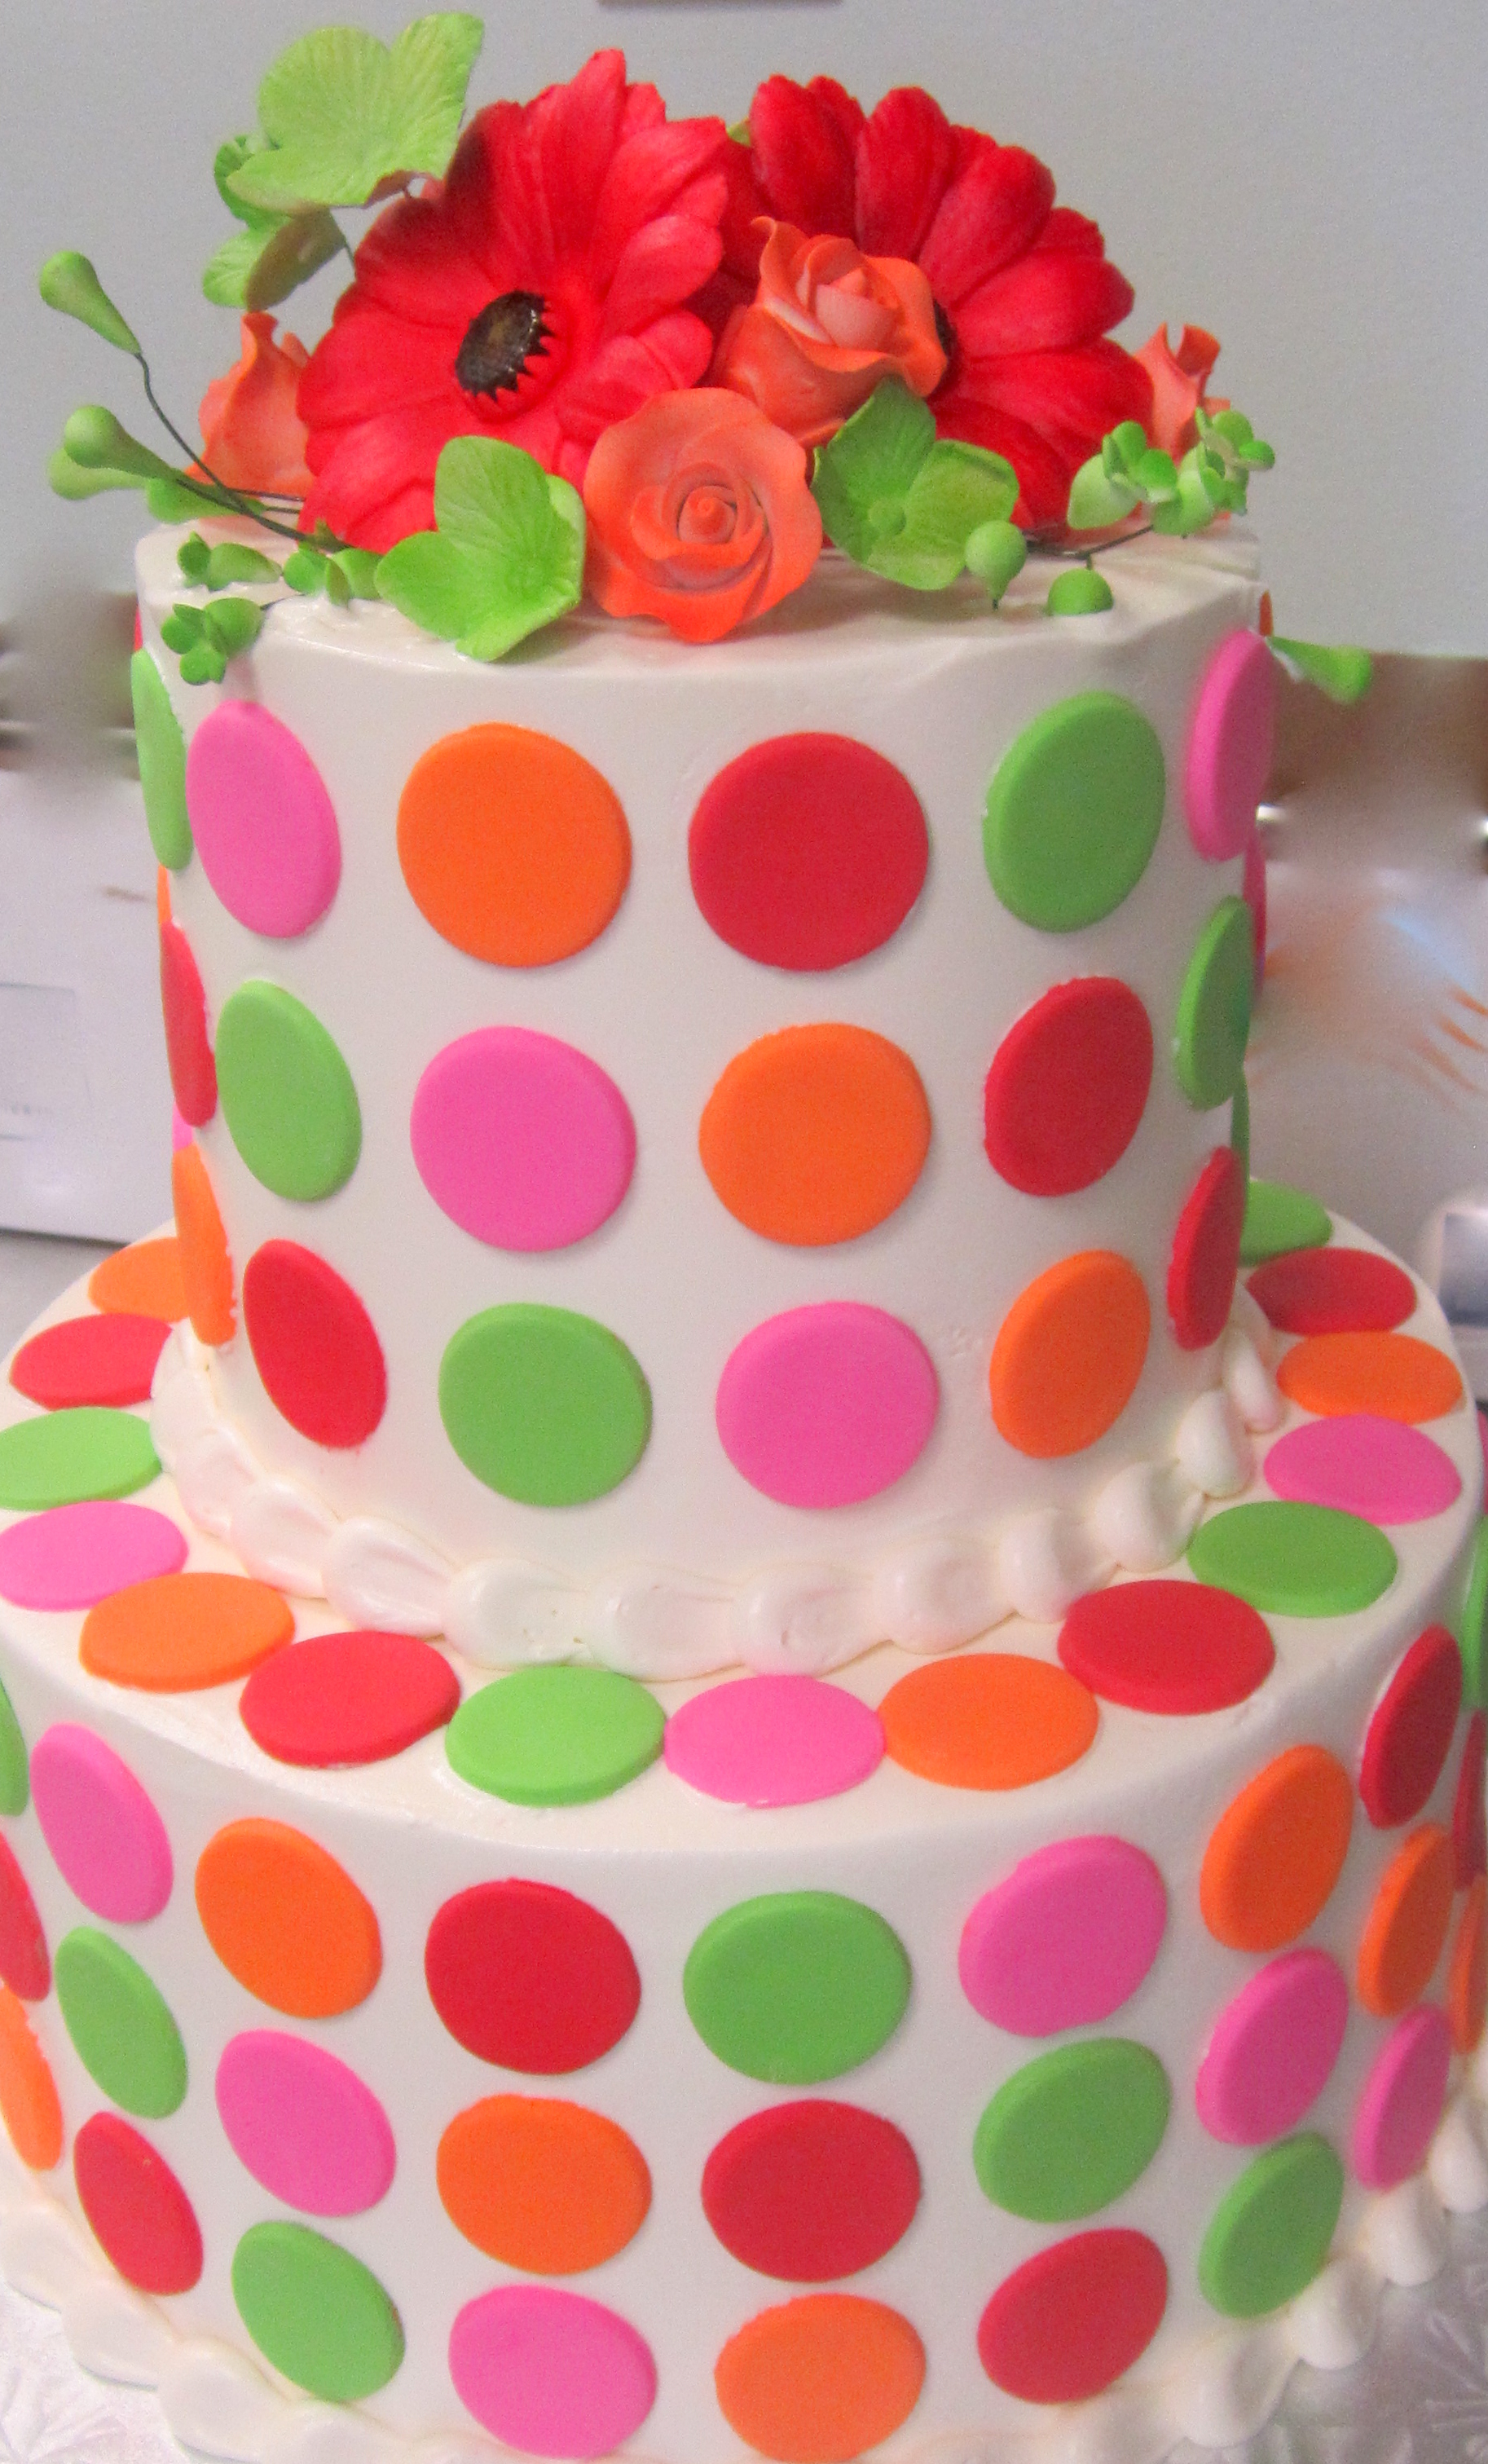 rainbow fondant dots with flower topper.jpg